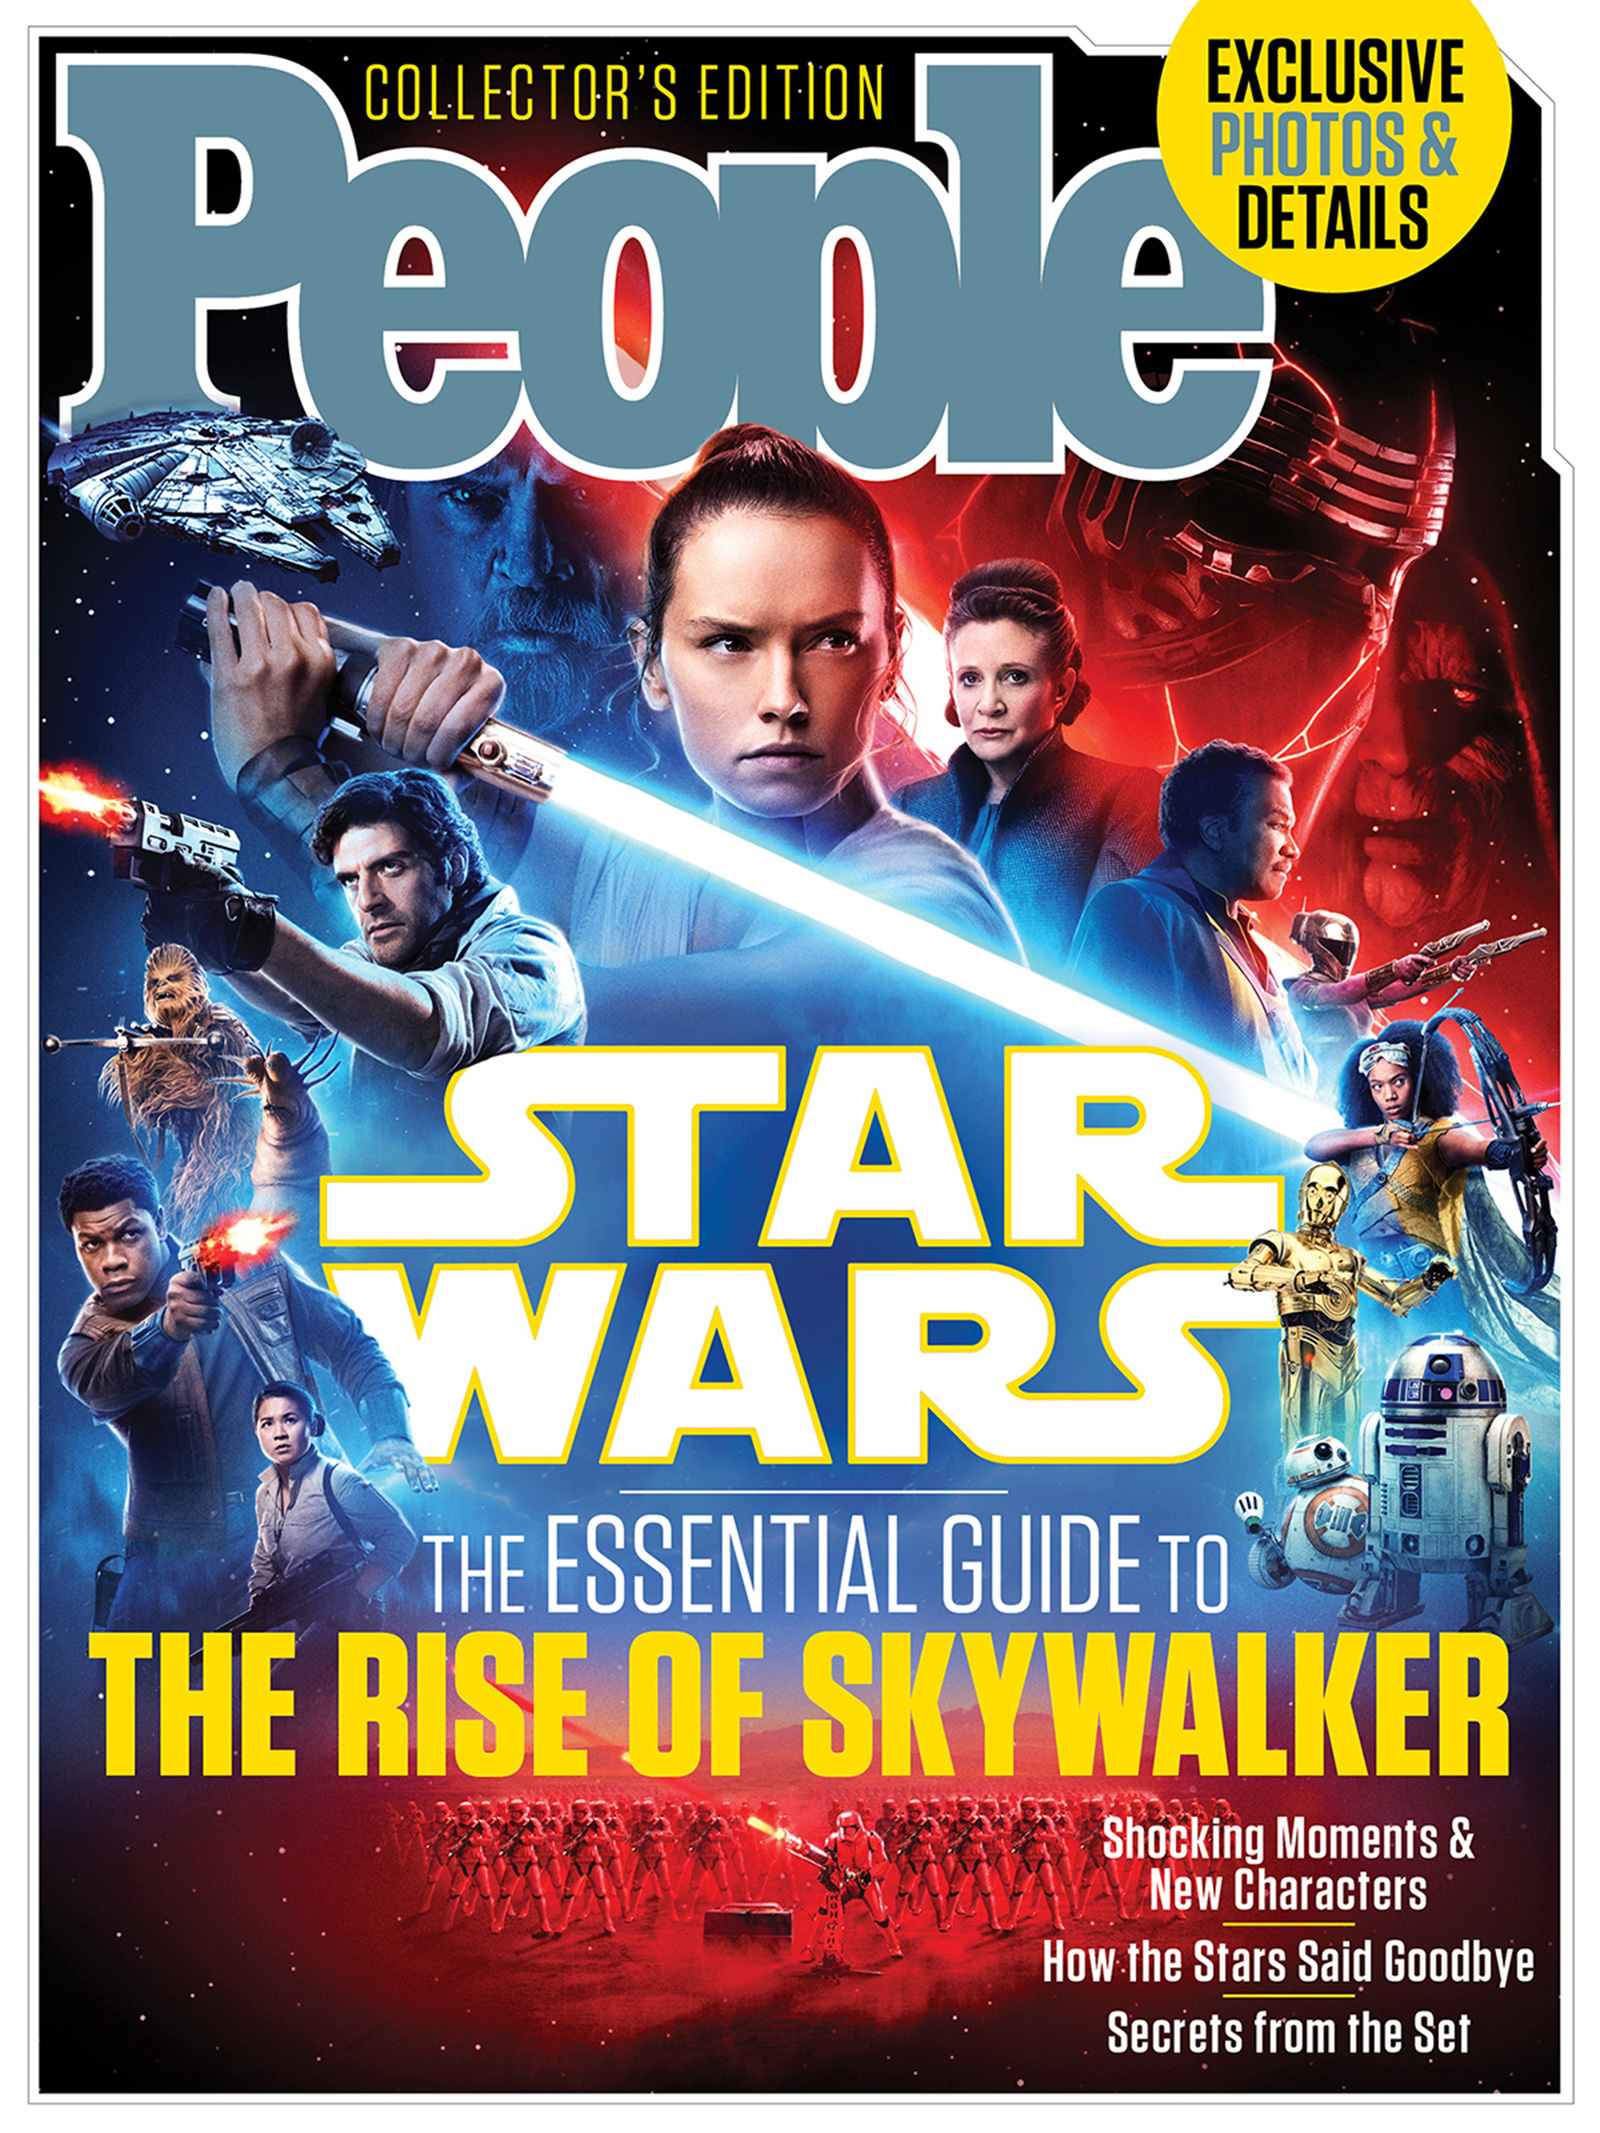 People Collector's Edition: The Essential Guide to The Rise of Skywalker